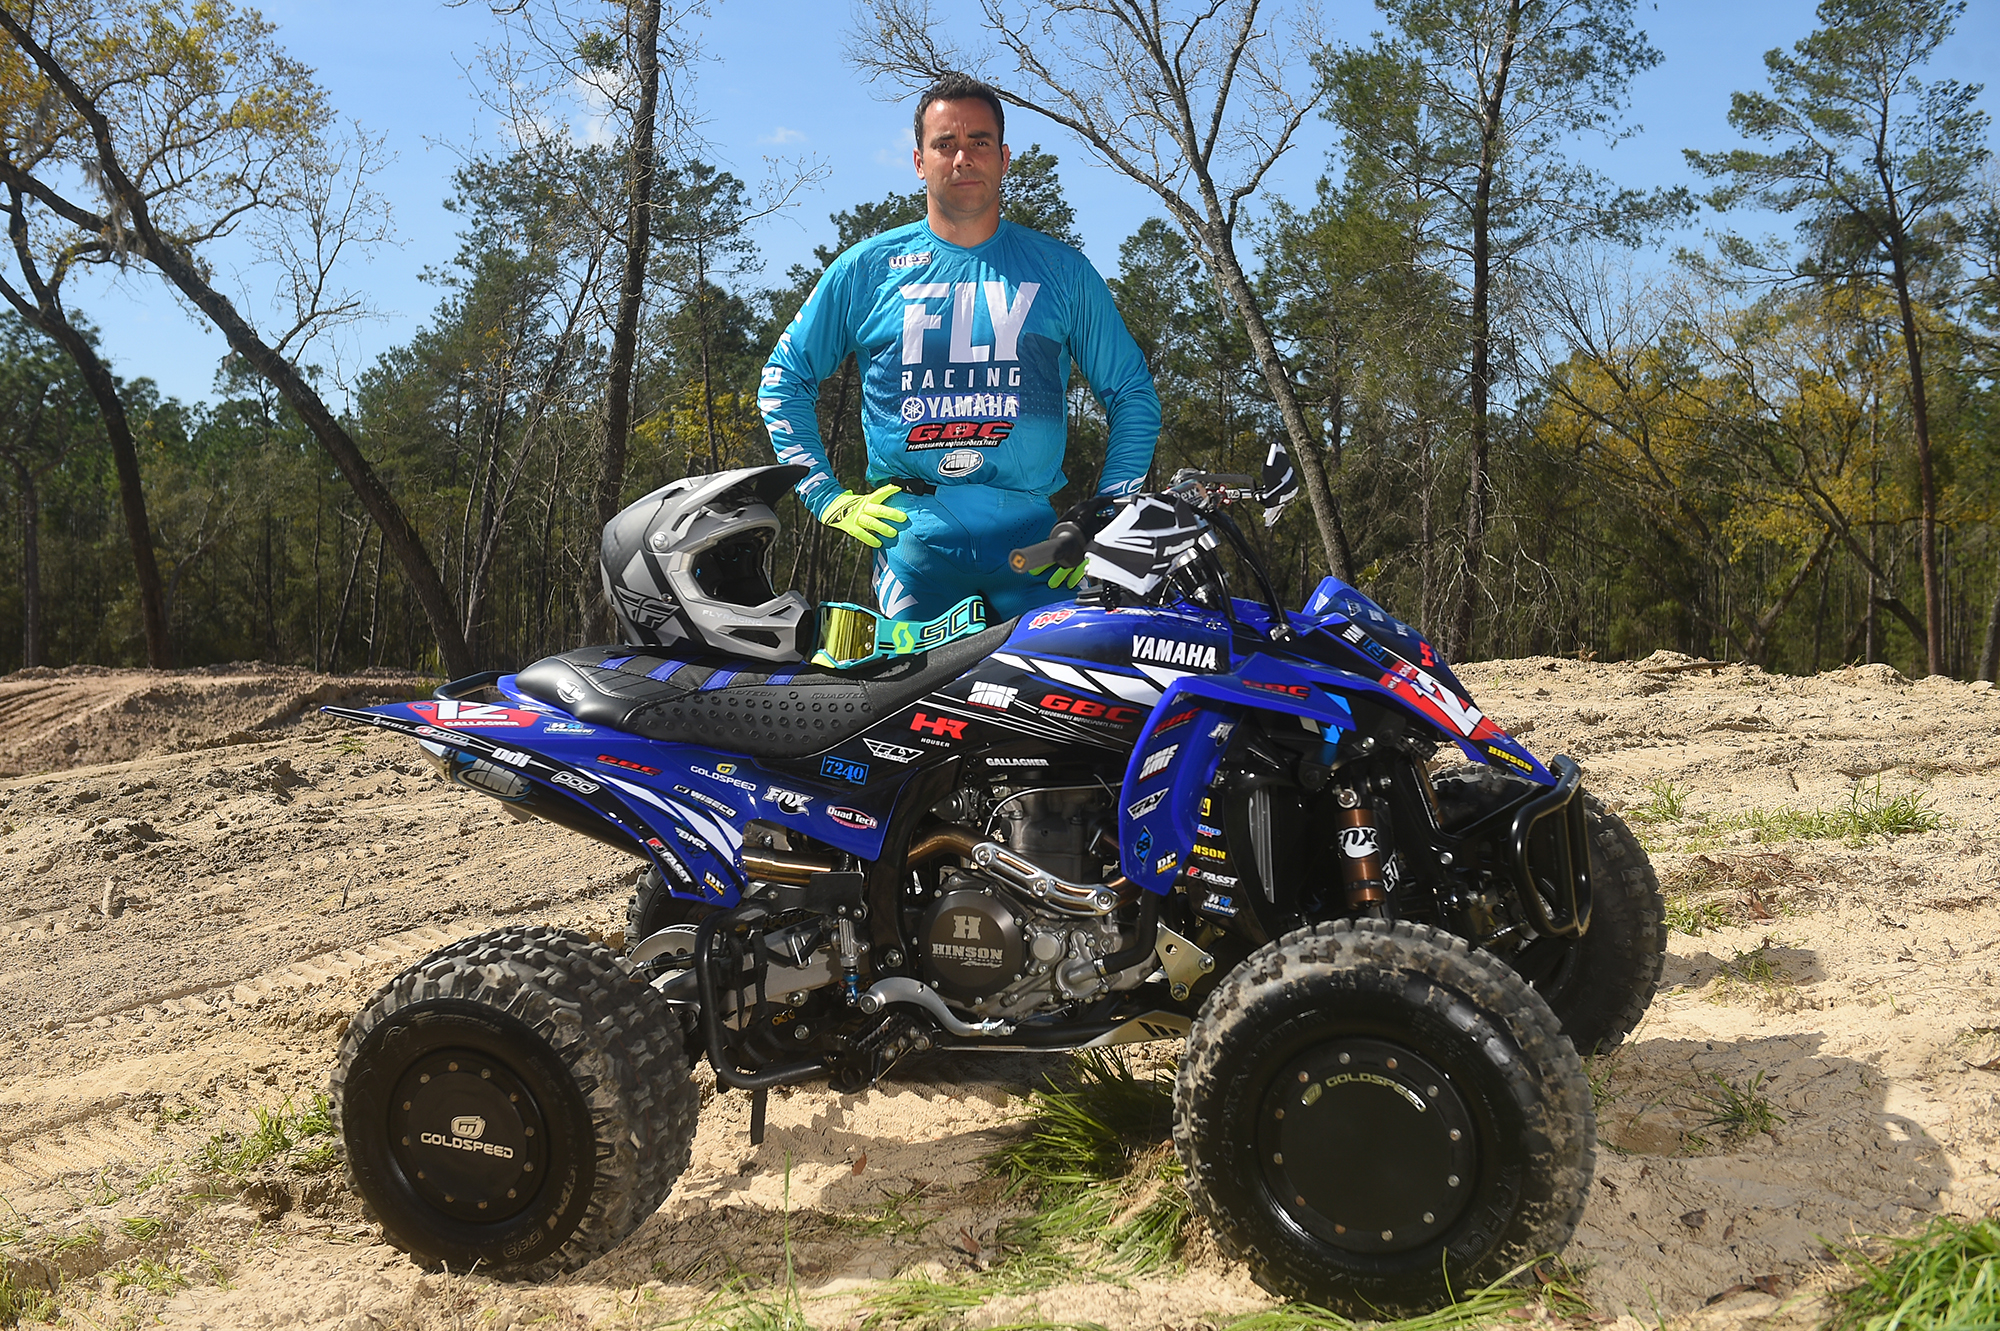 Celebrating 25 years of racing at a pro-level, XC1 Pro ATV rider Johnny Gallagher will lead this year's Yamaha Racing ATV instructors.